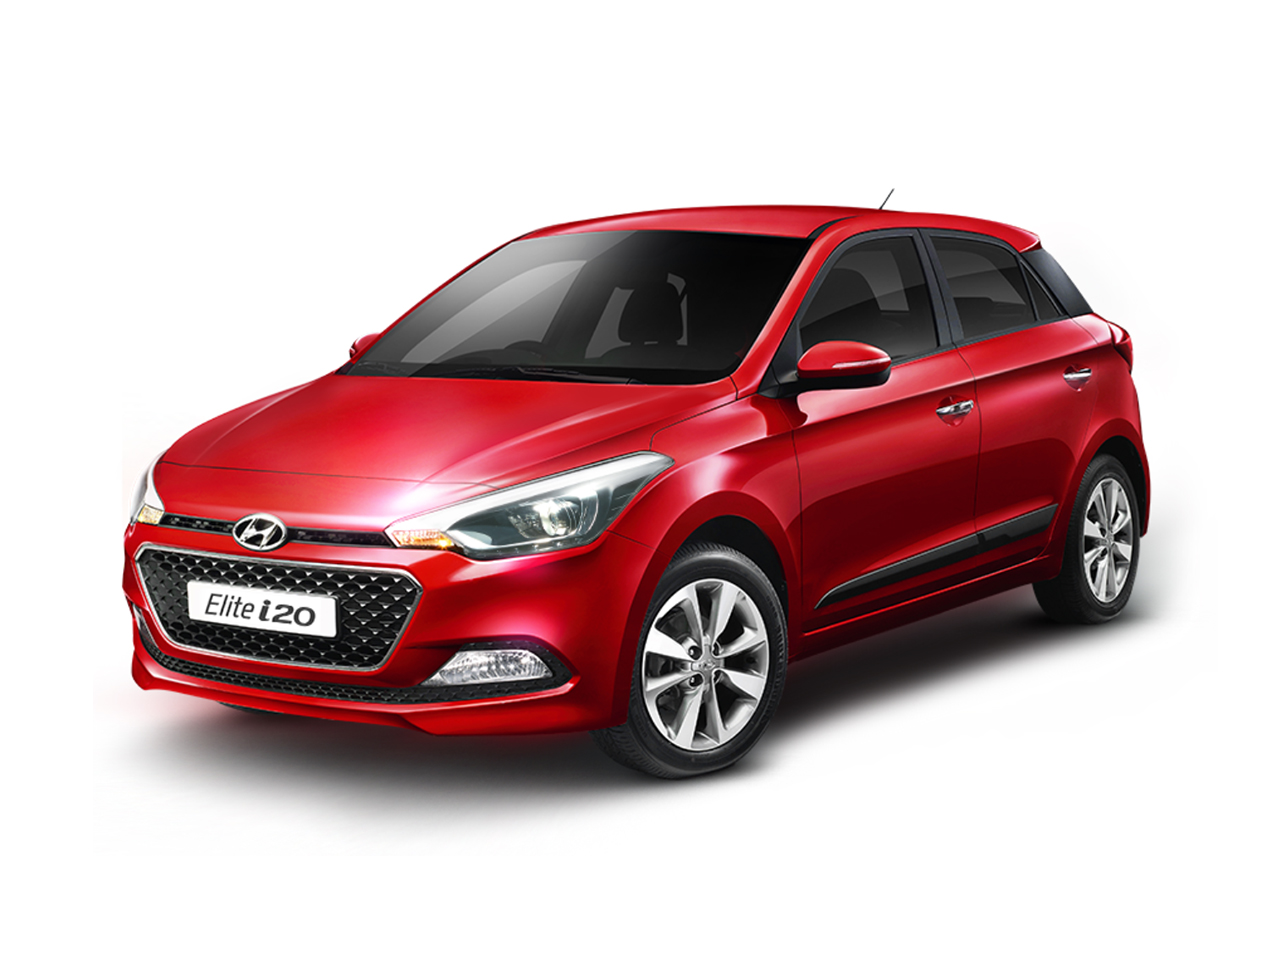 2017 hyundai i20 prices in bahrain gulf specs reviews. Black Bedroom Furniture Sets. Home Design Ideas